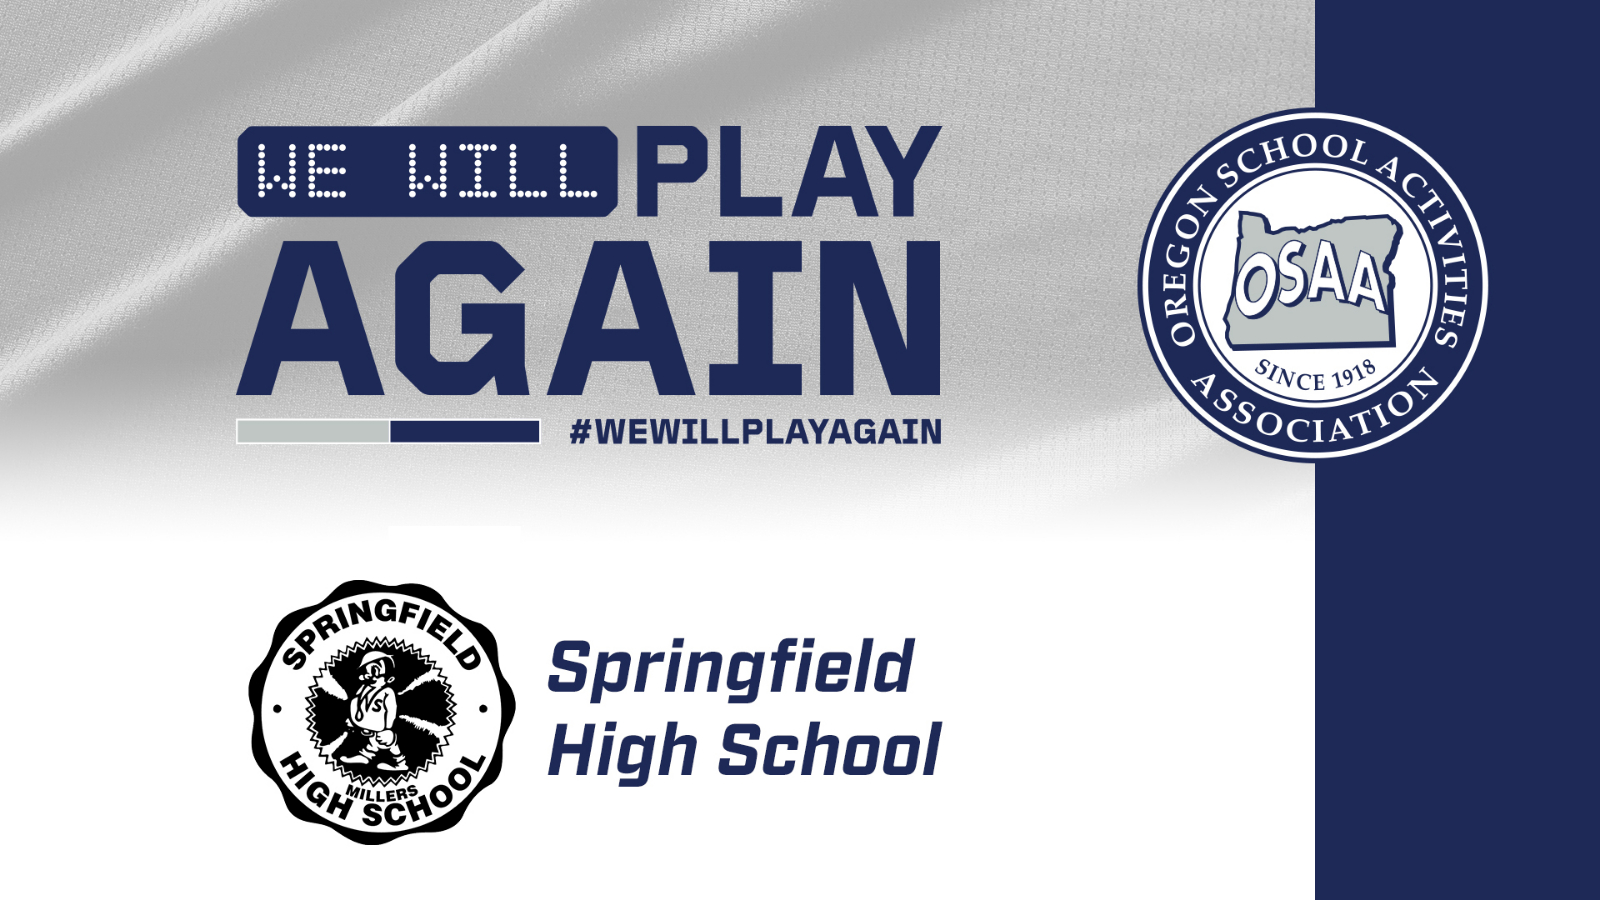 Today, Tomorrow, Next month, Next Year. #WeWillPlayAgain